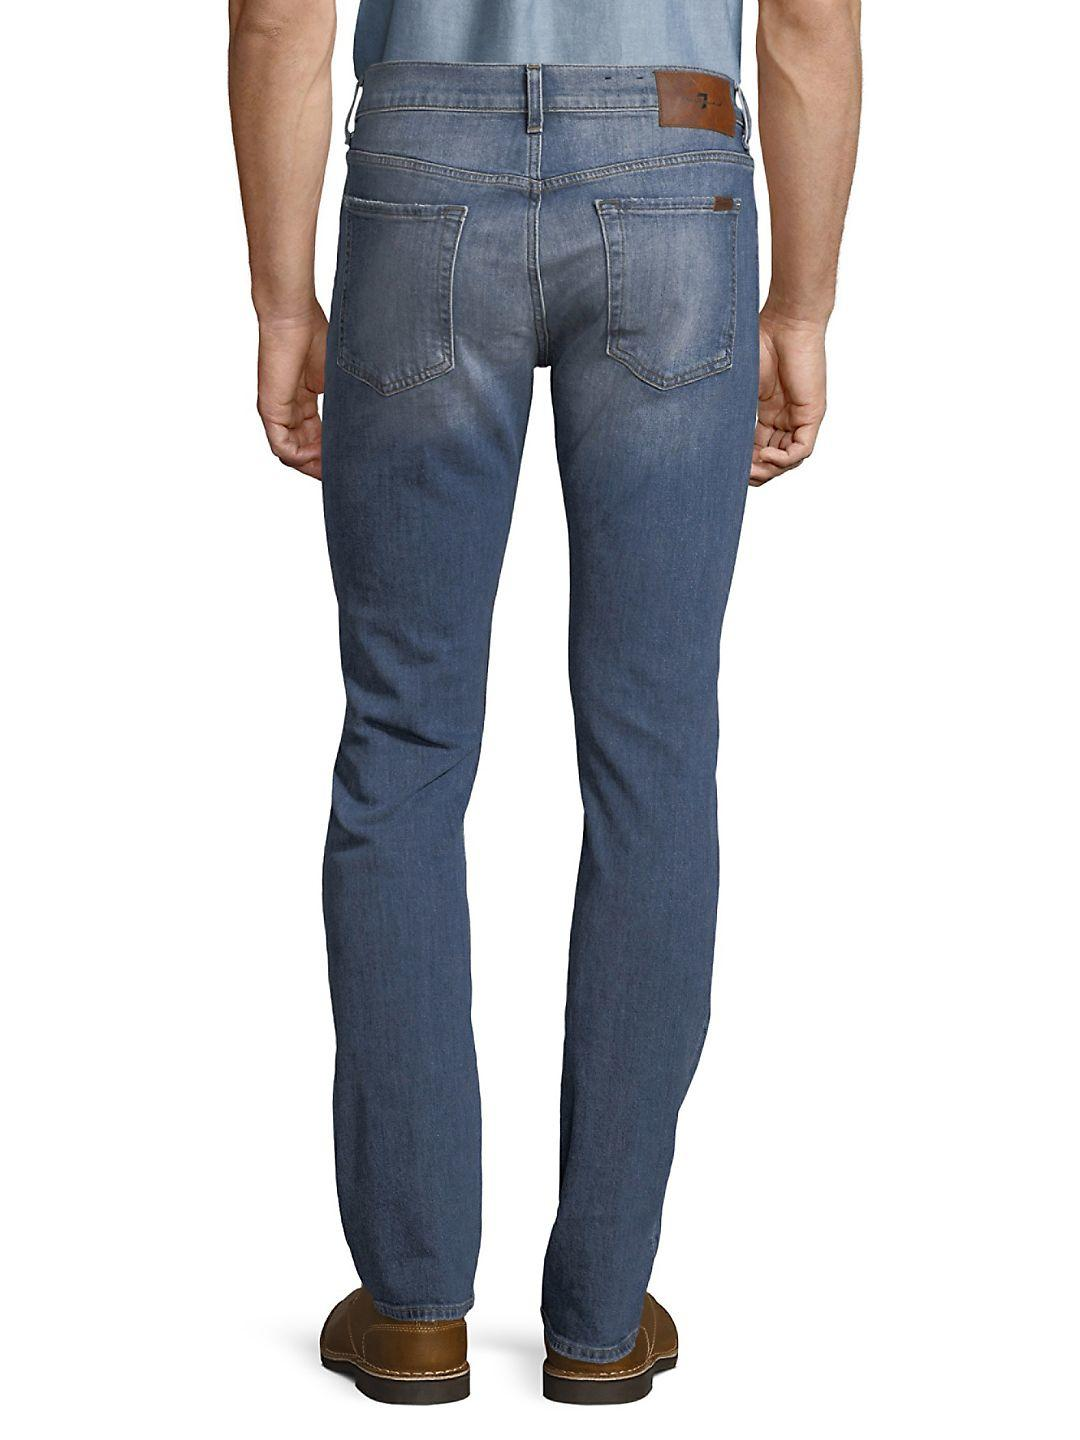 7 For All Mankind Denim Paxtyn Distressed Jeans in Indigo (Blue) for Men